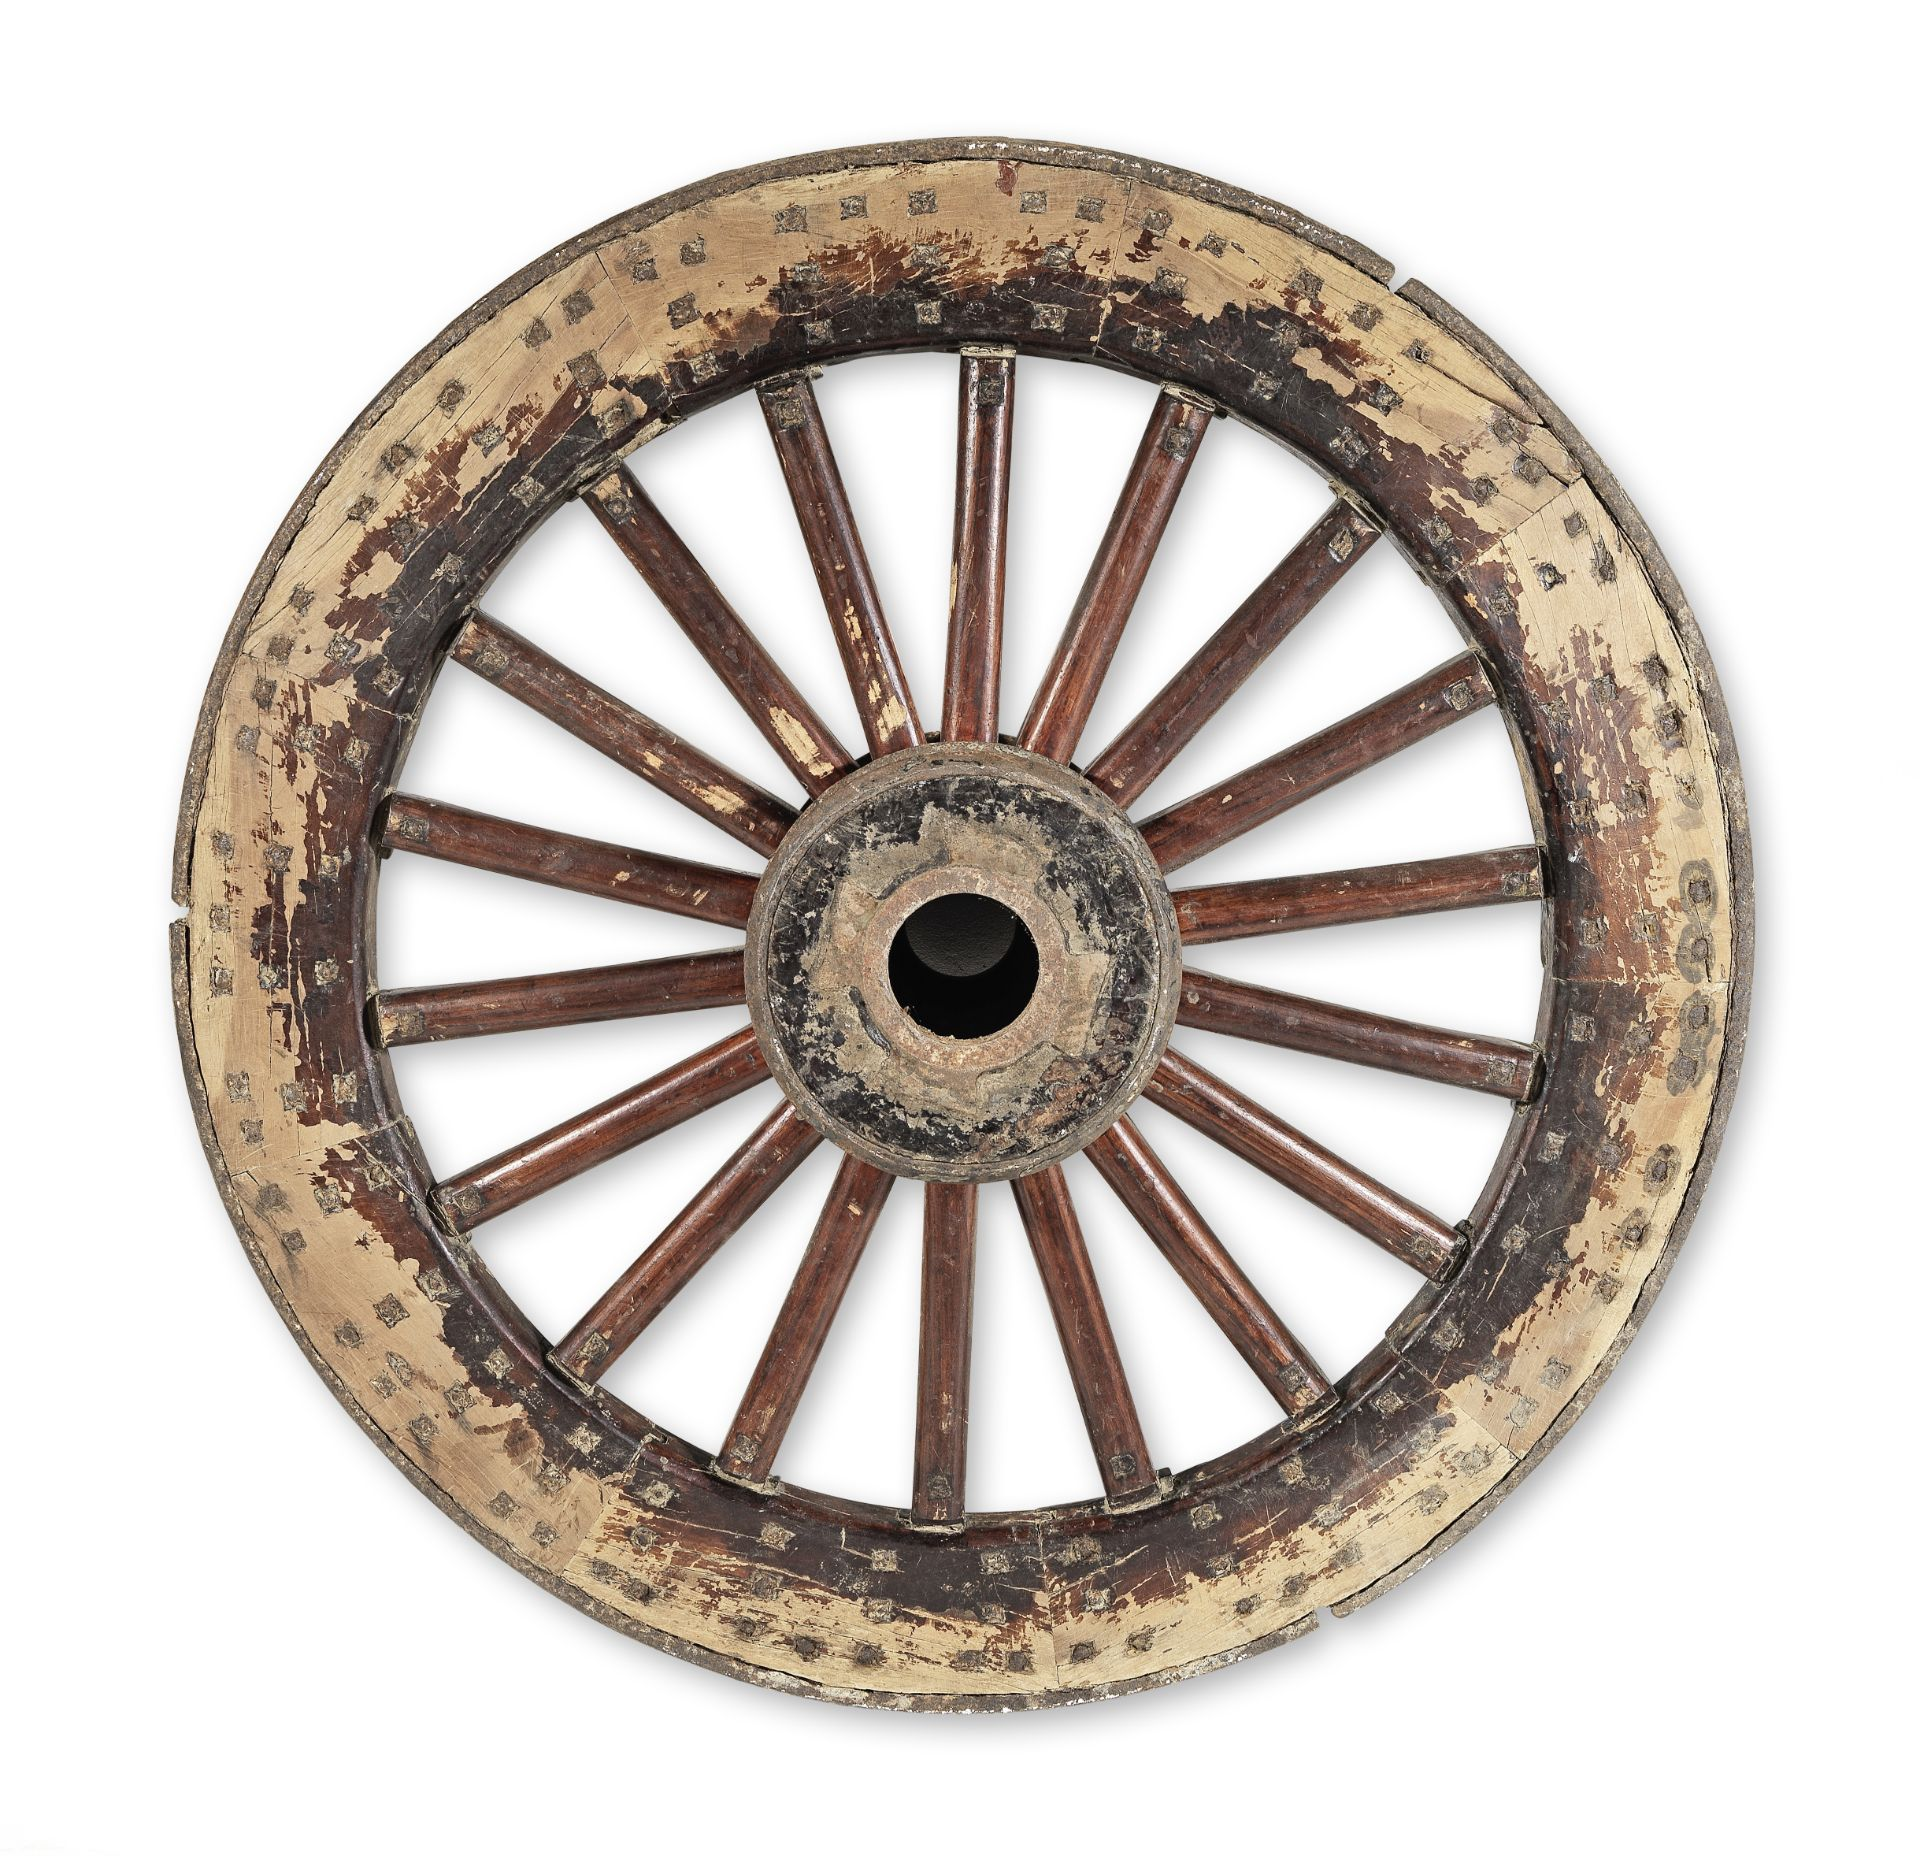 Los 216 - A Chinese carved and turned hardwood and iron bound ceremonial carriage wheel